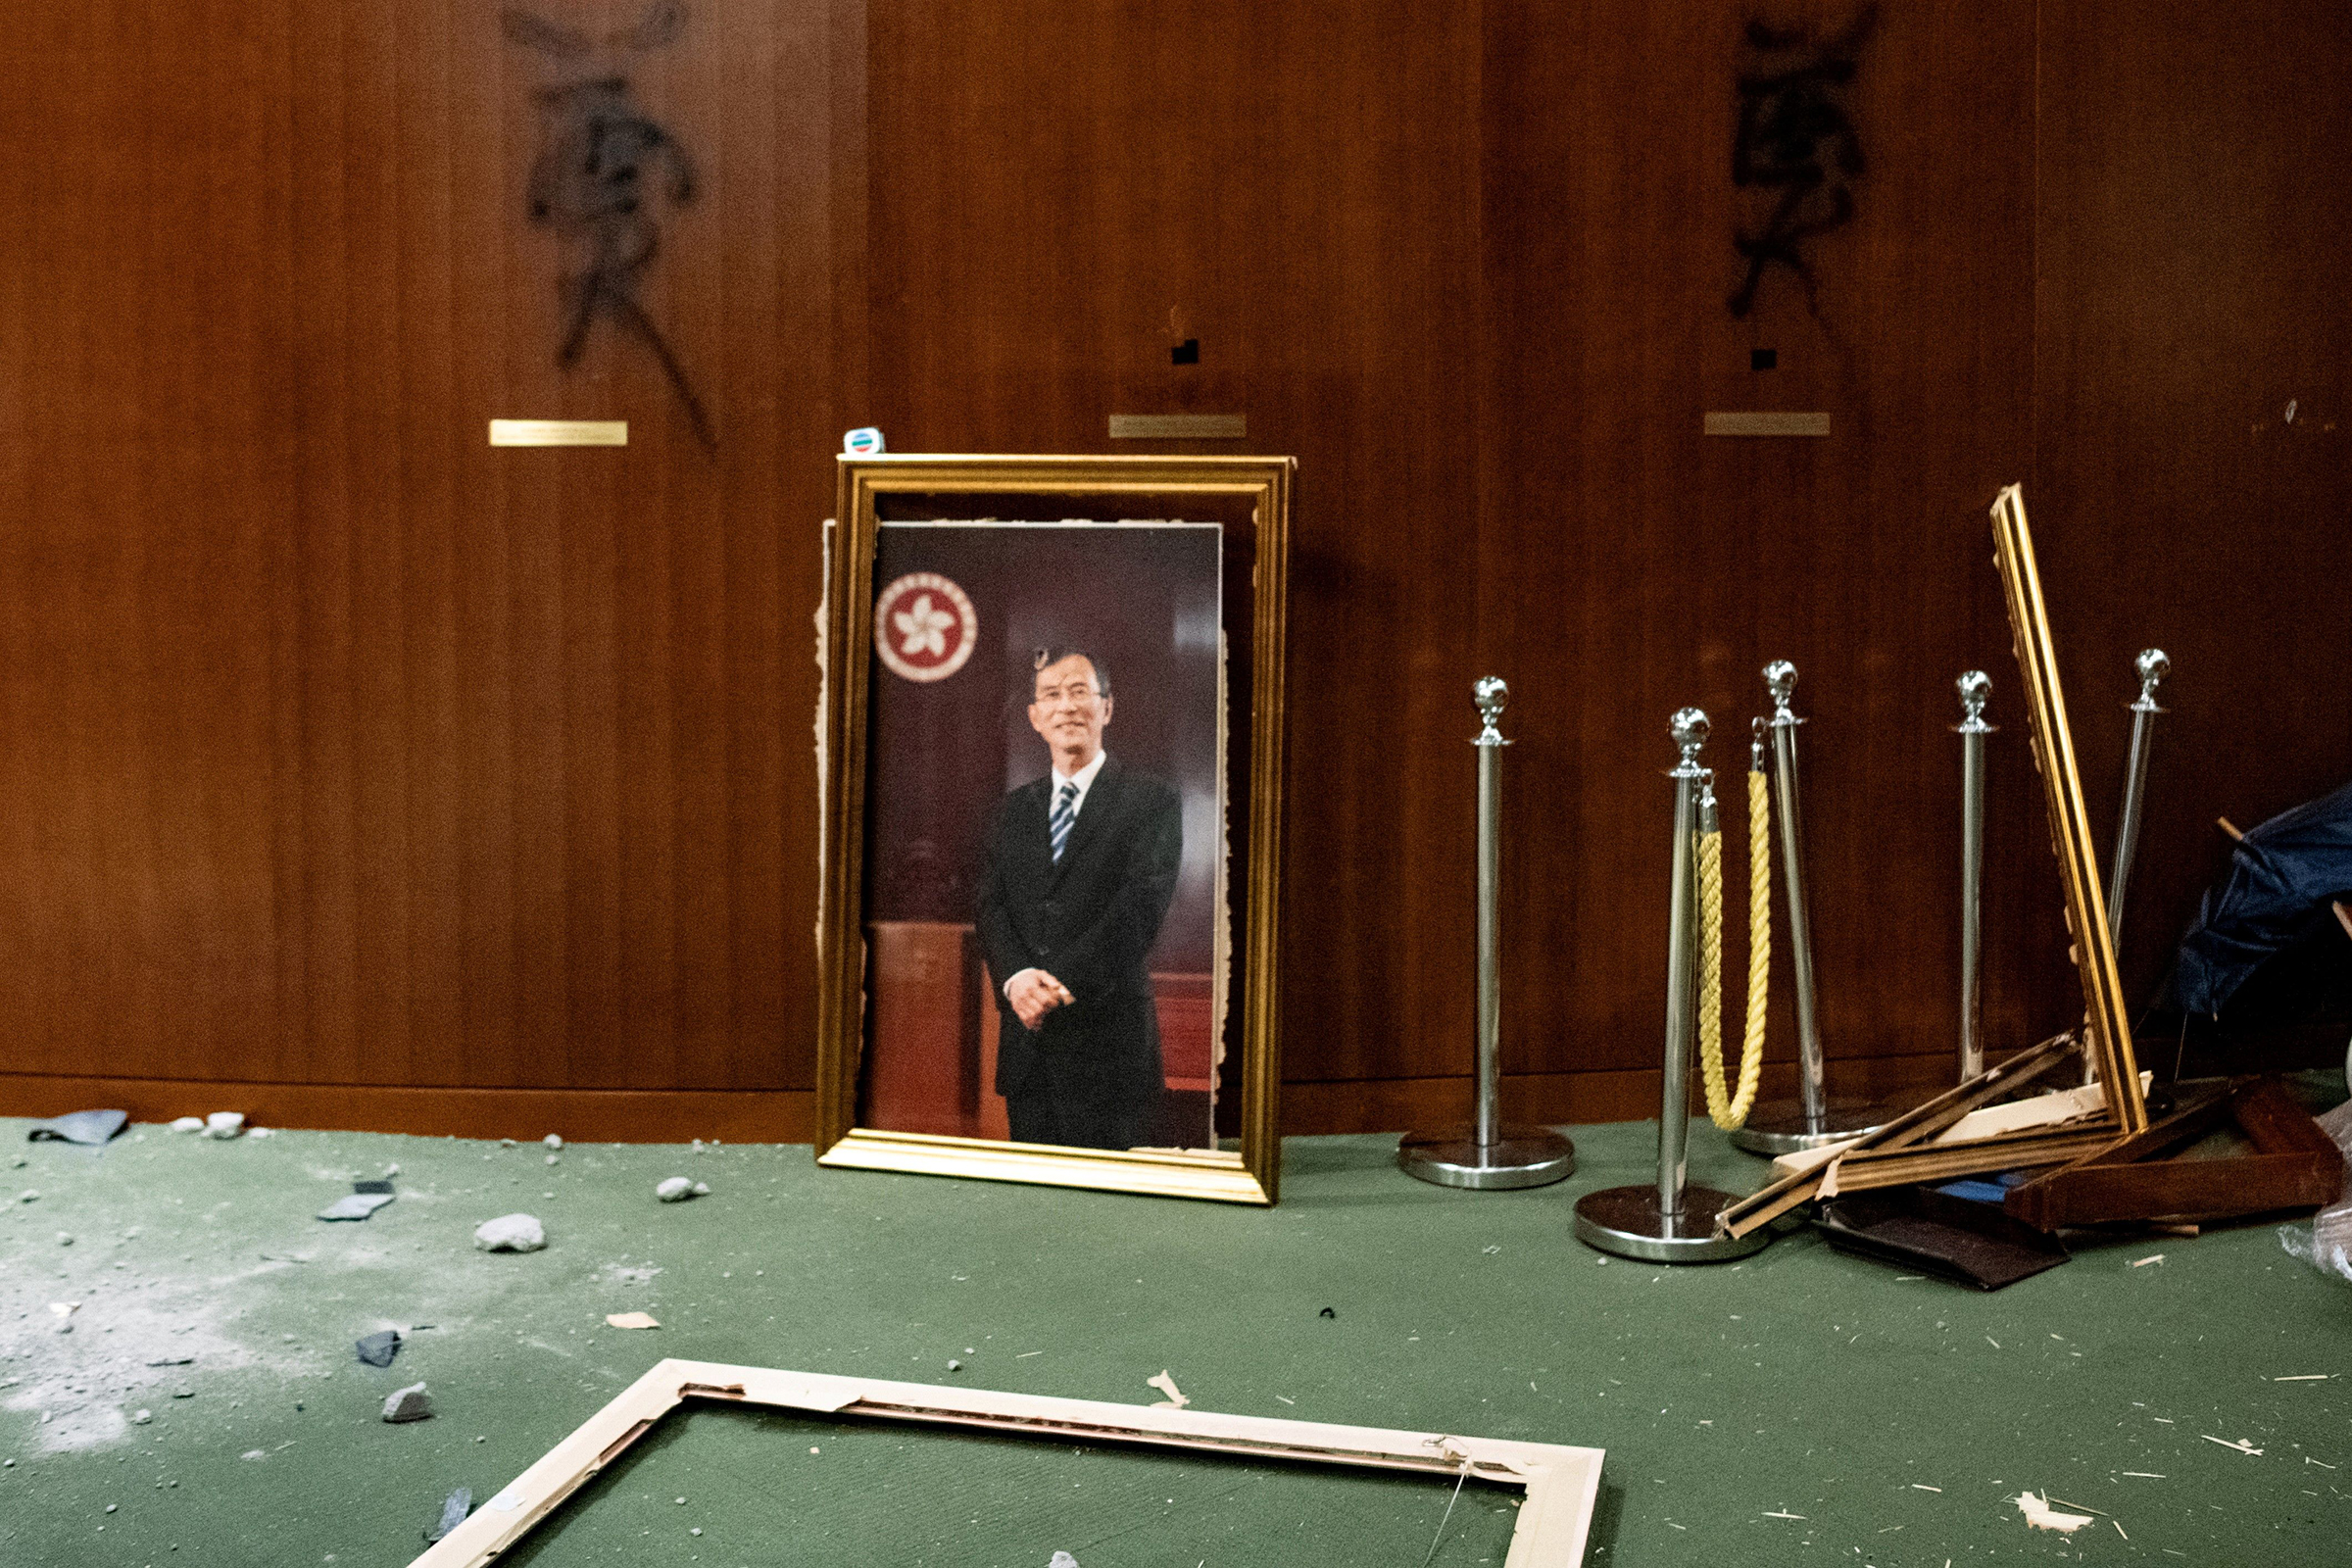 The portrait of a former chairman of the Legislative Council, Jasper Tsang, is destroyed after protesters broke into the chamber of the Legislative Council in Hong Kong on July 1, 2019.